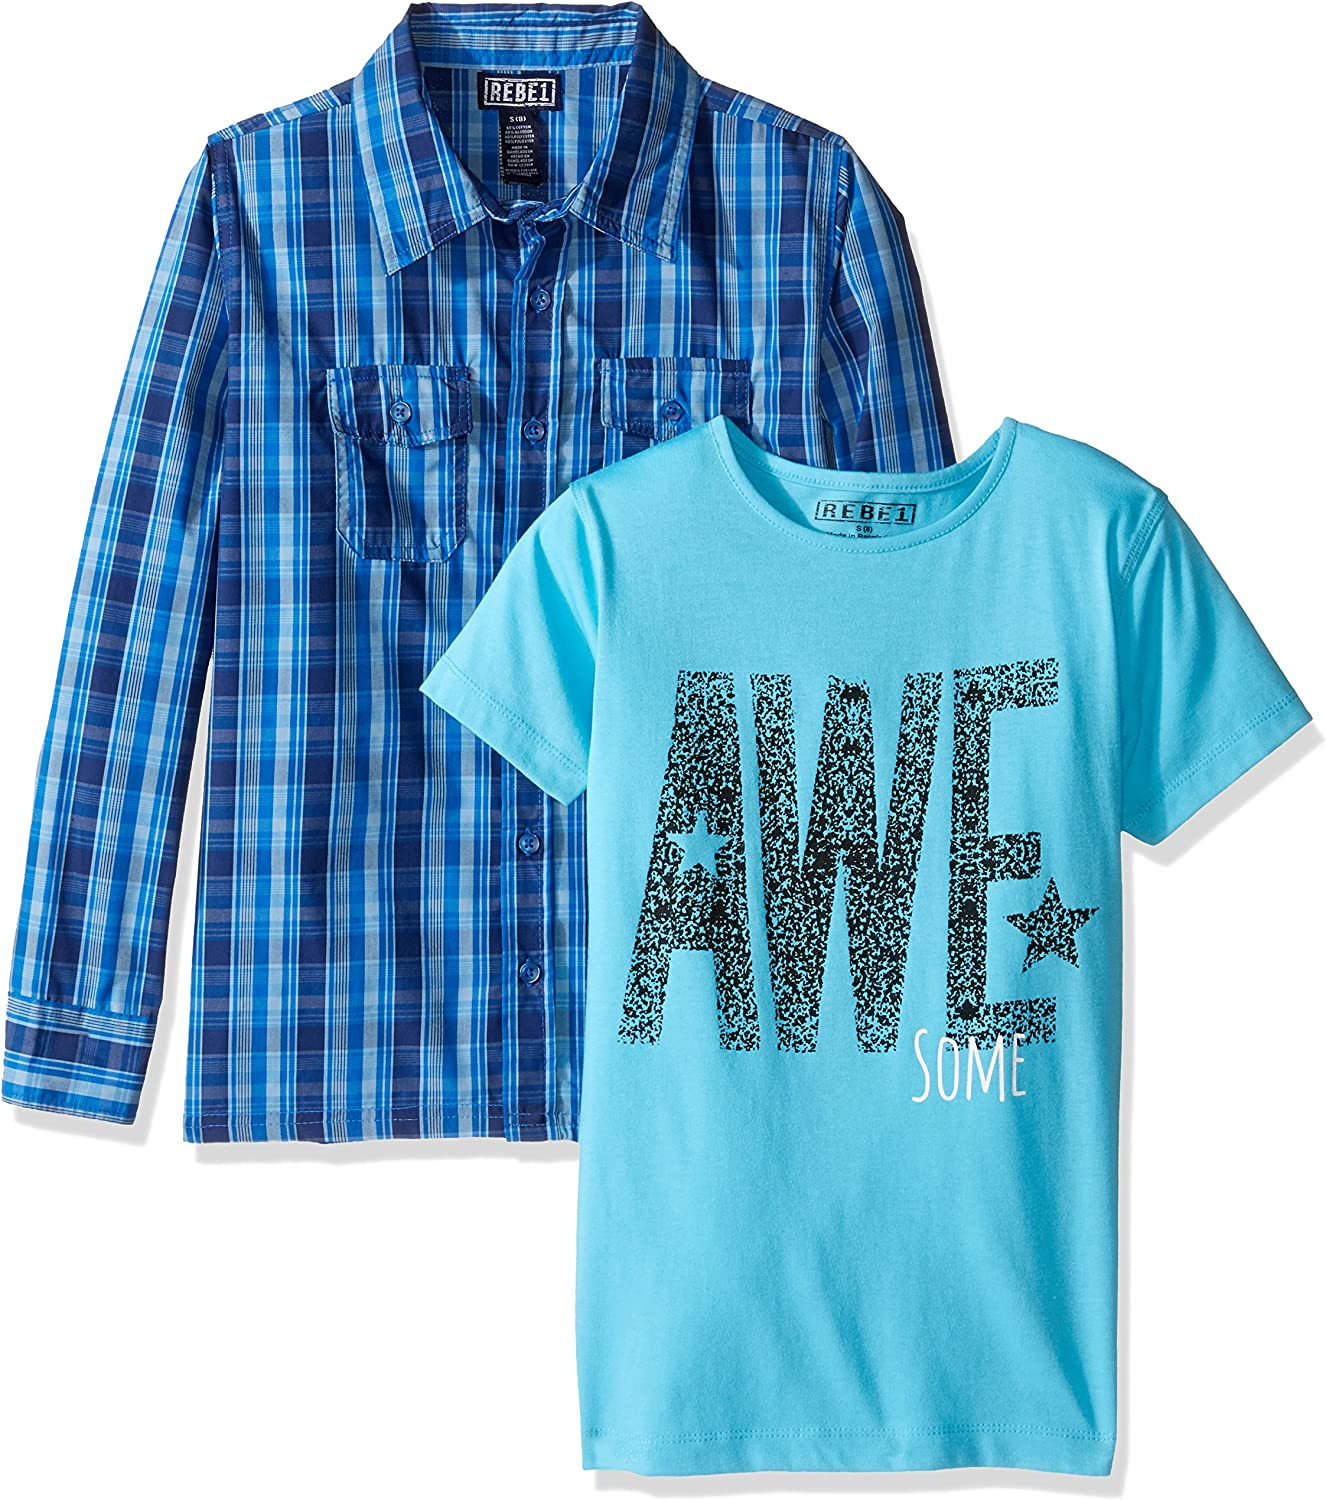 Rebe1 Boys' Plaid Button Down with 2 Pockets with Screen Tee-2 Pc Set